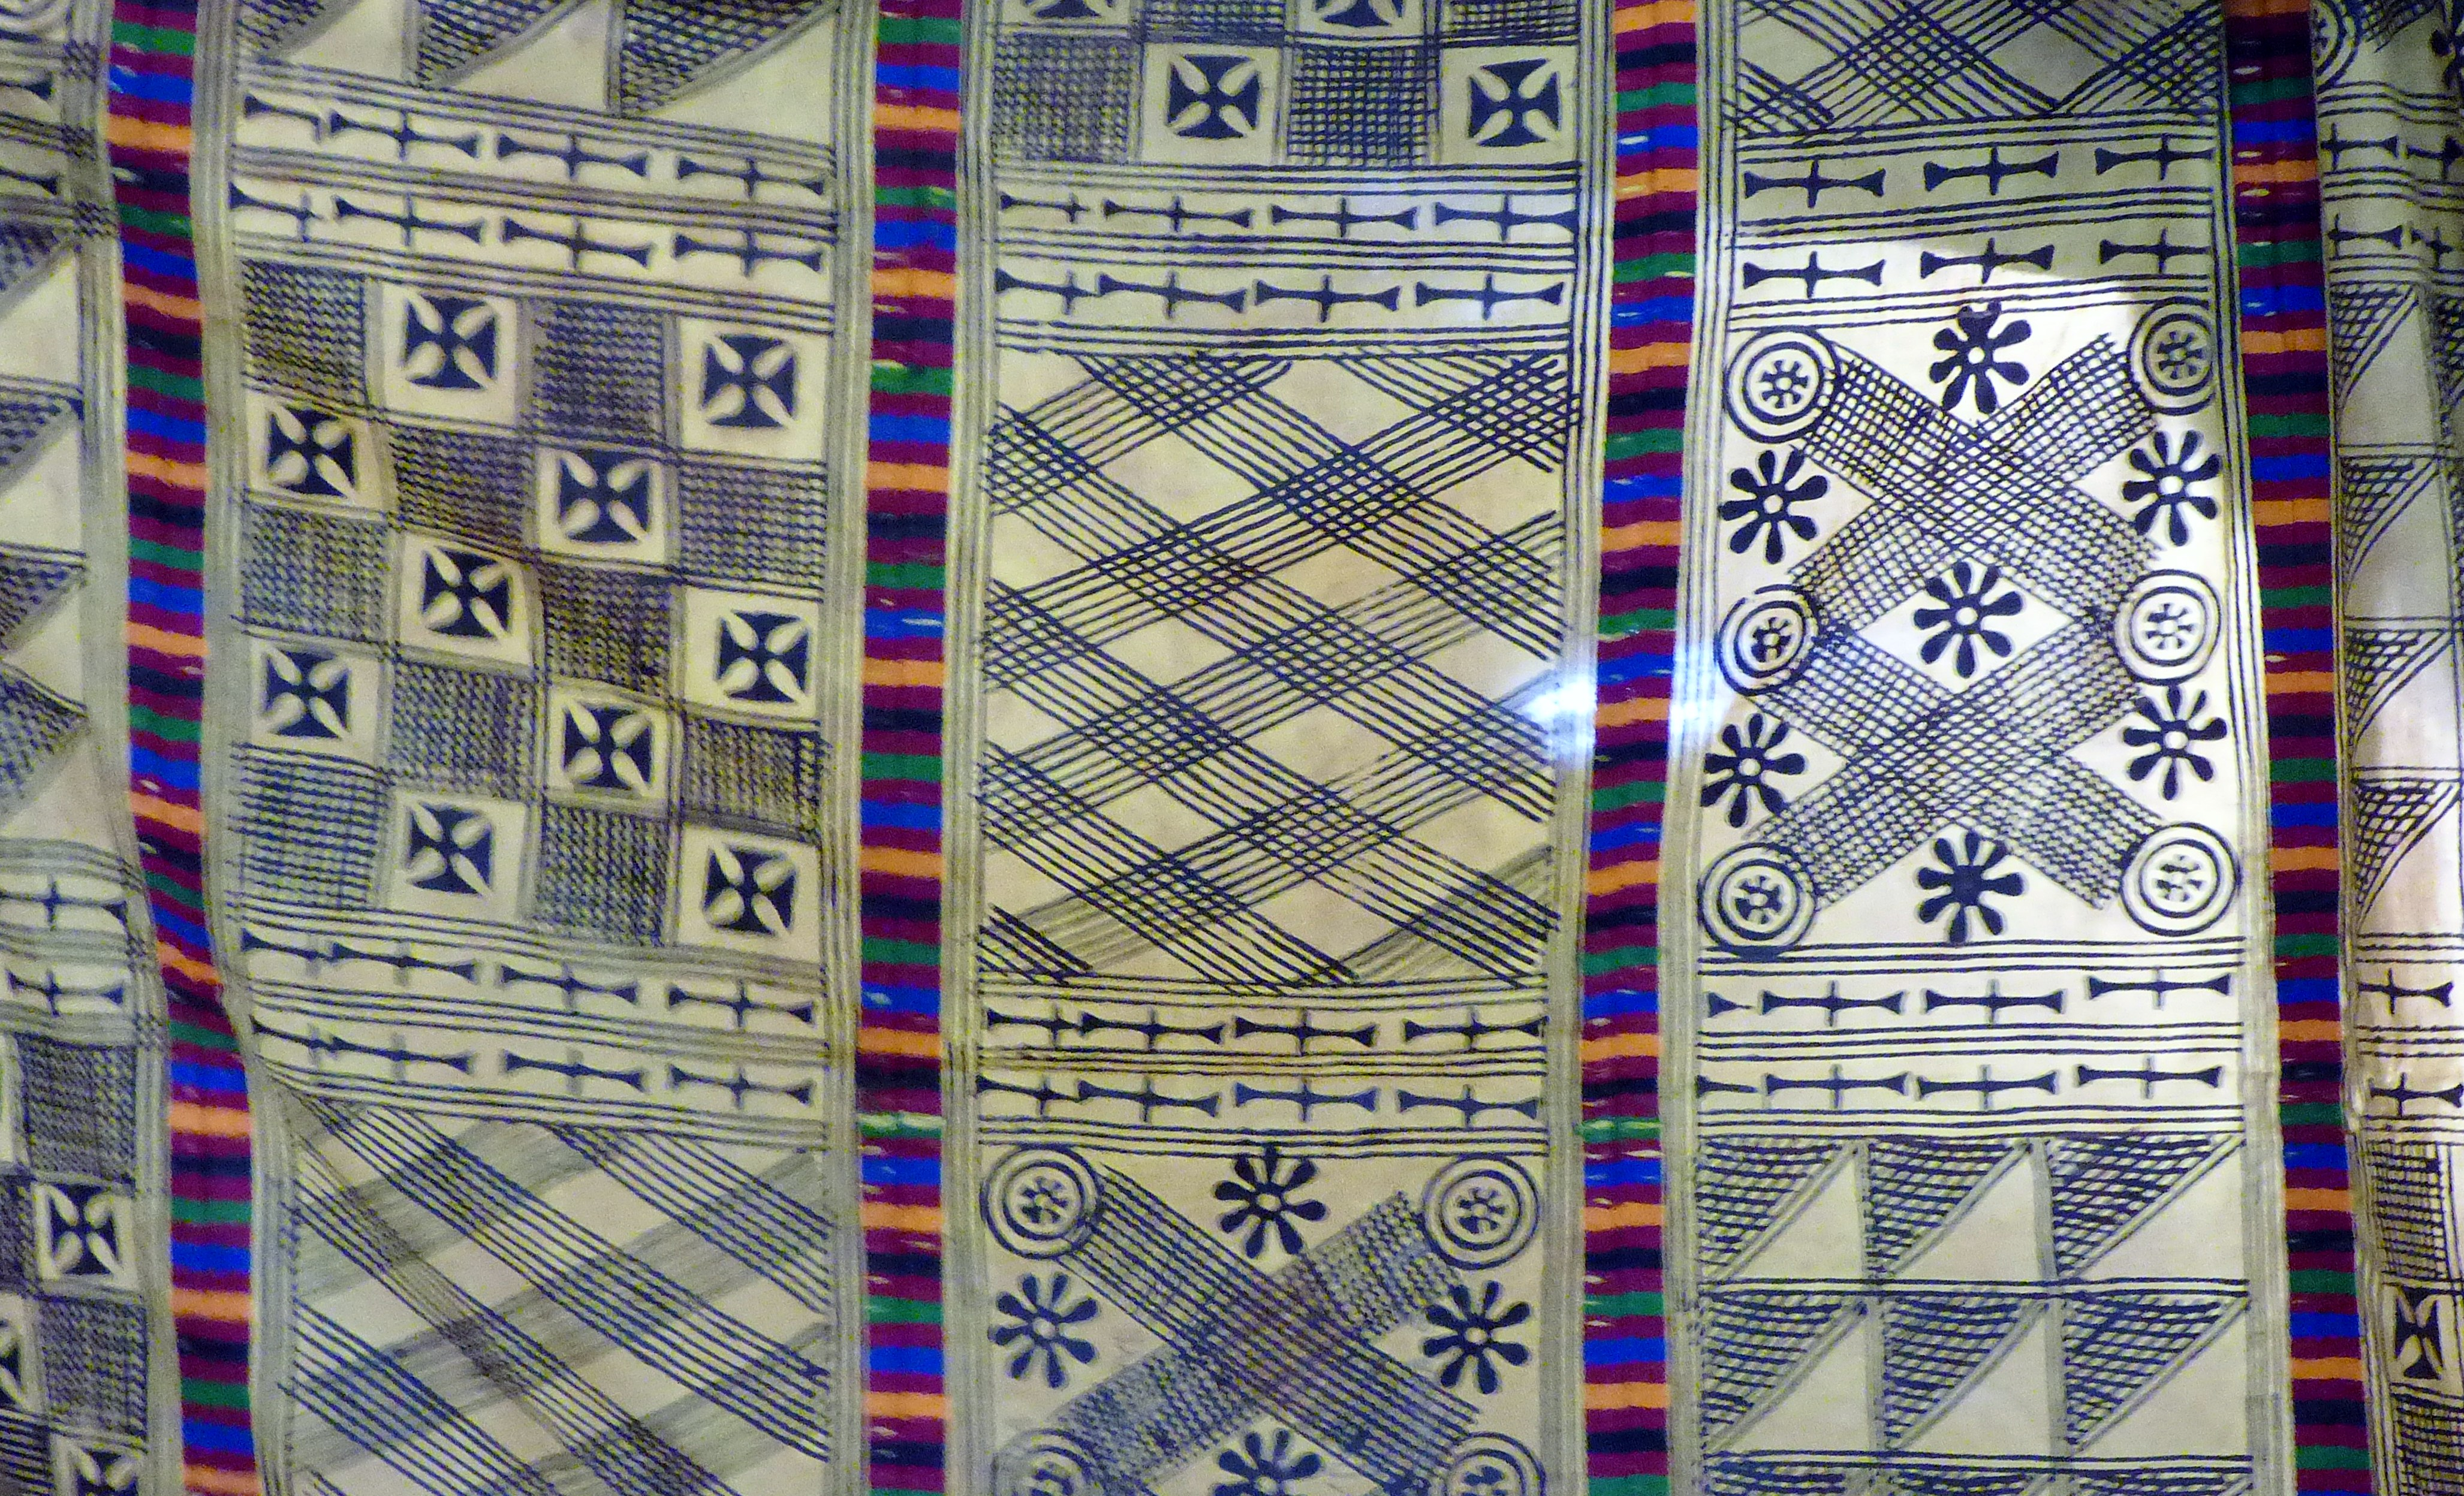 West African cloth shown by Magi Relph